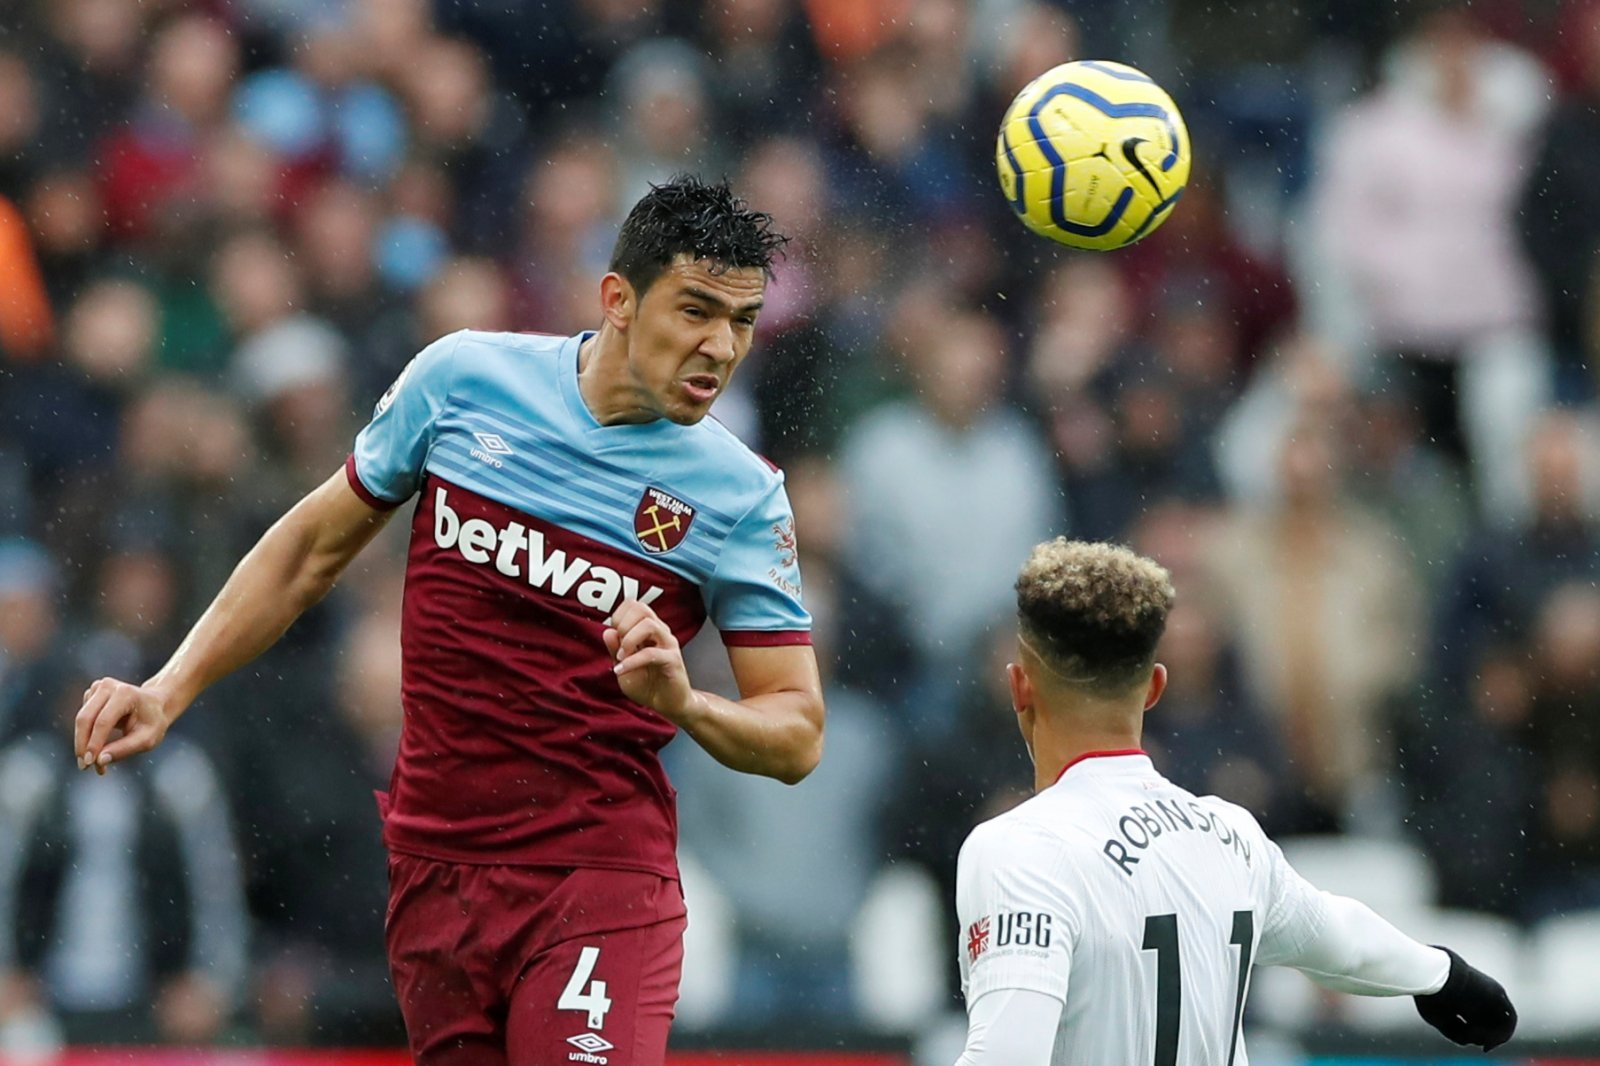 West Ham United: Many fans weren't bothered about Fabian Balbuena's goal